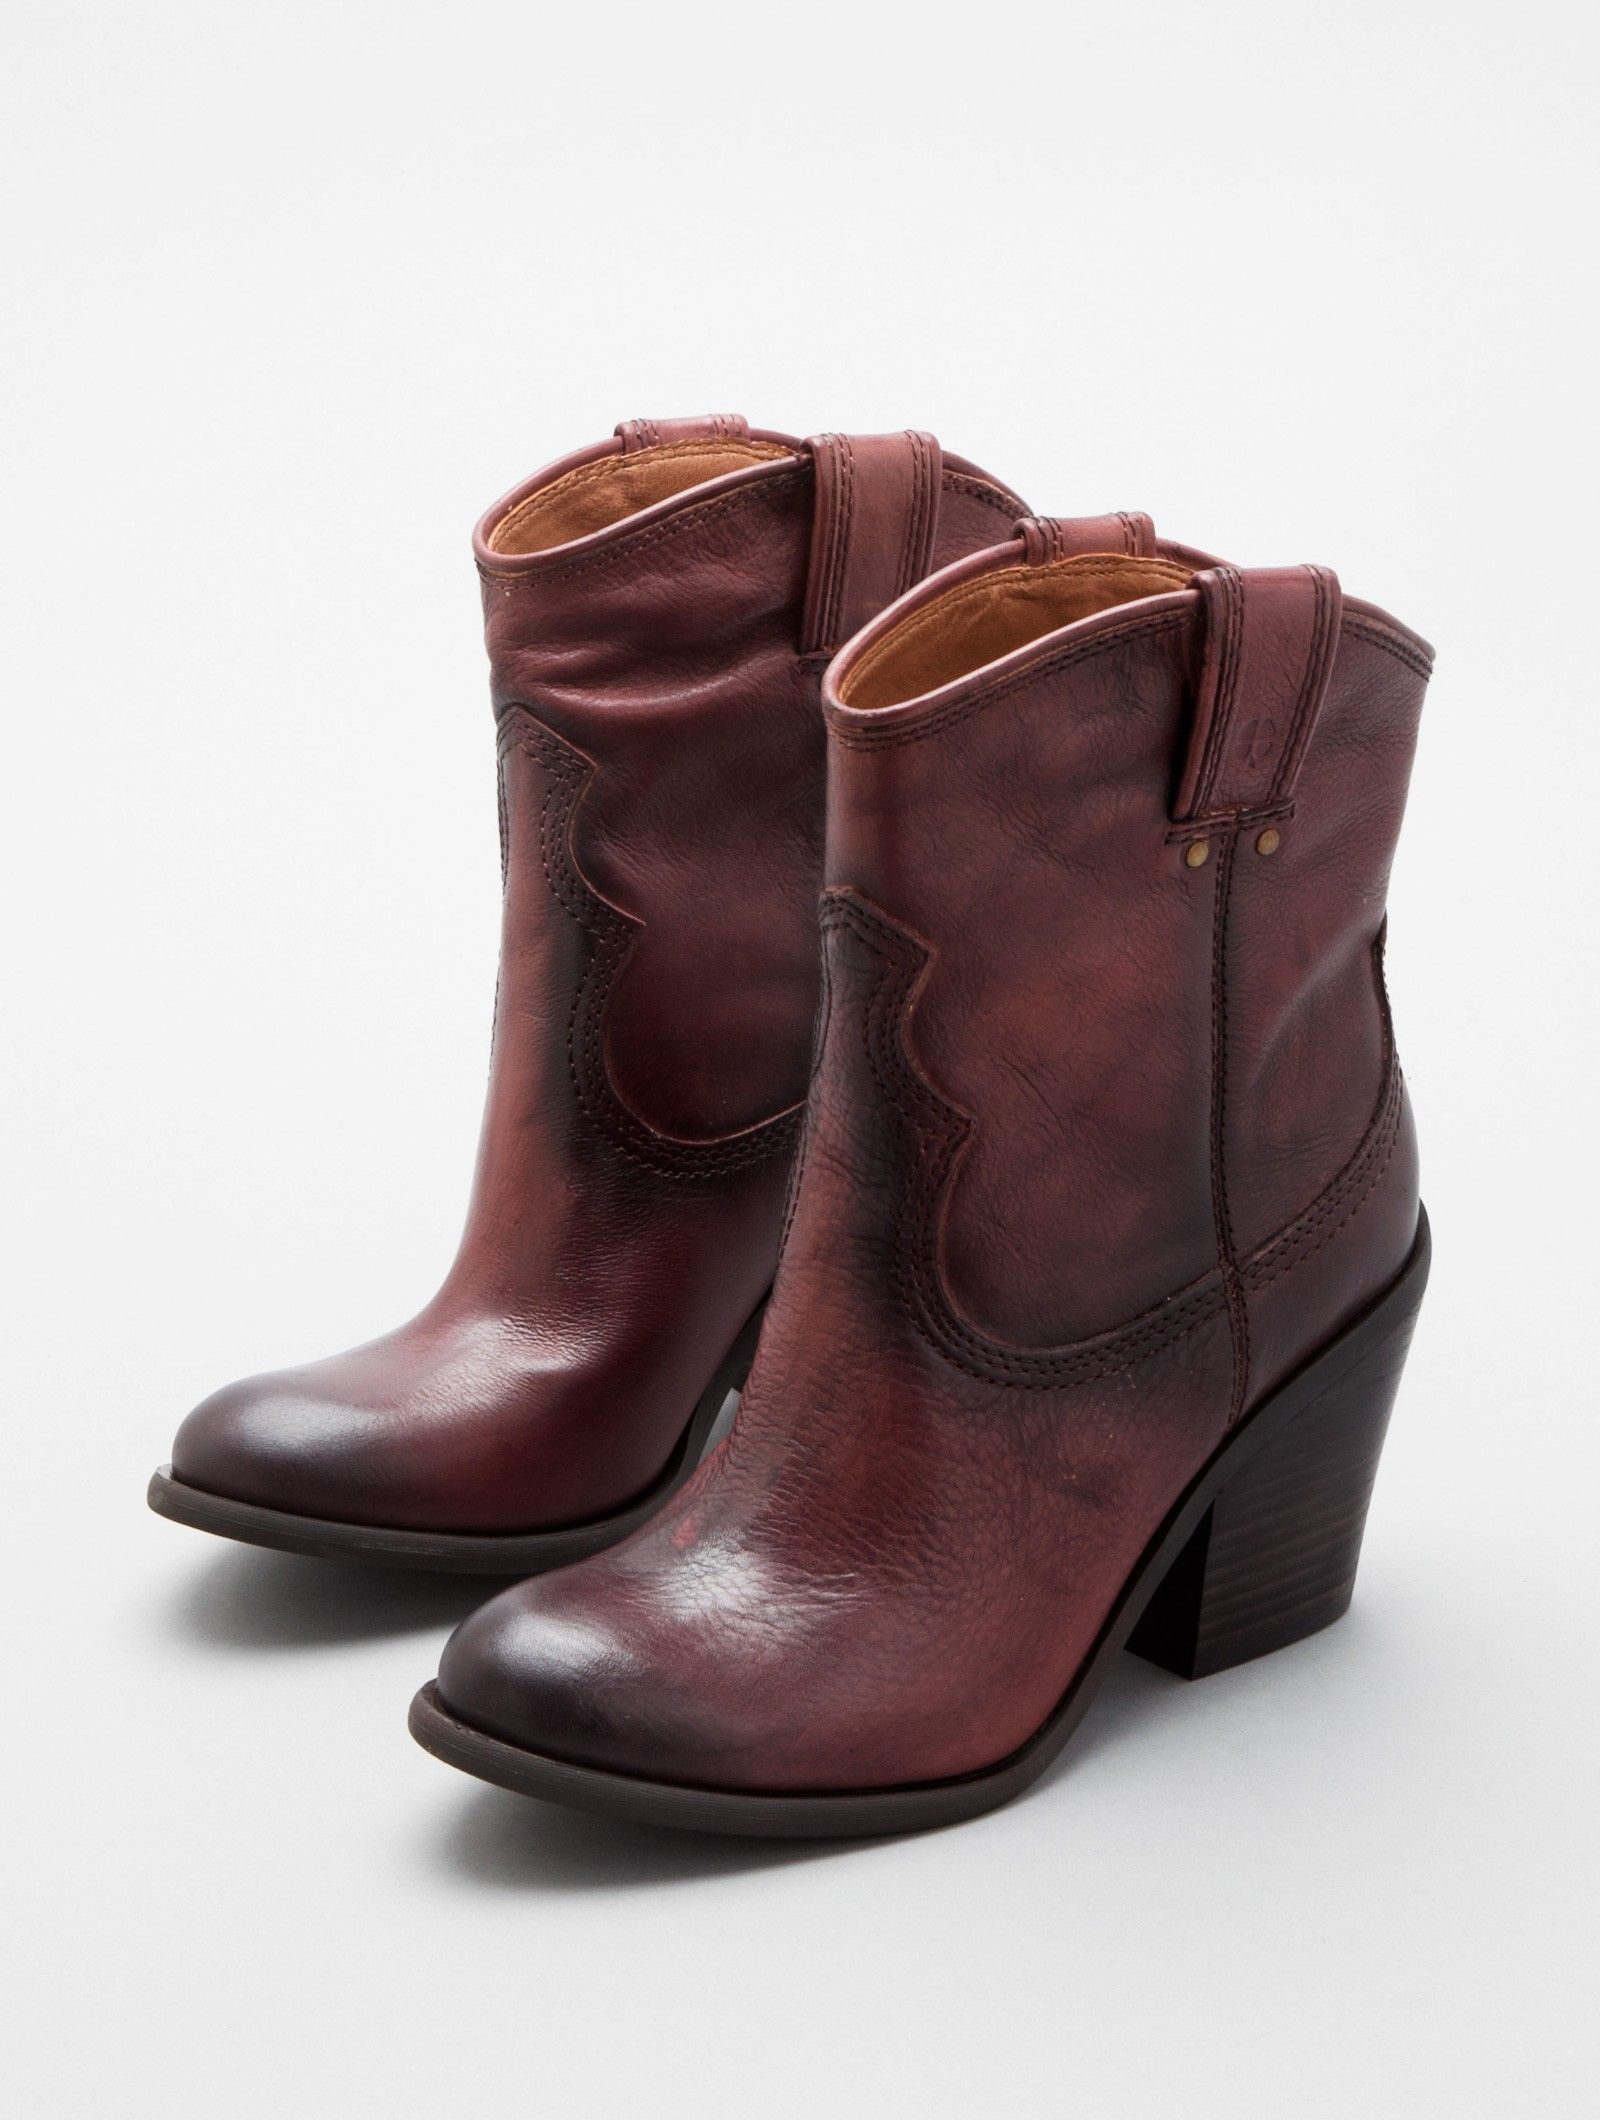 d1b6c7112ce Yeehaw! ELLENA by Lucky Brand BOOTS